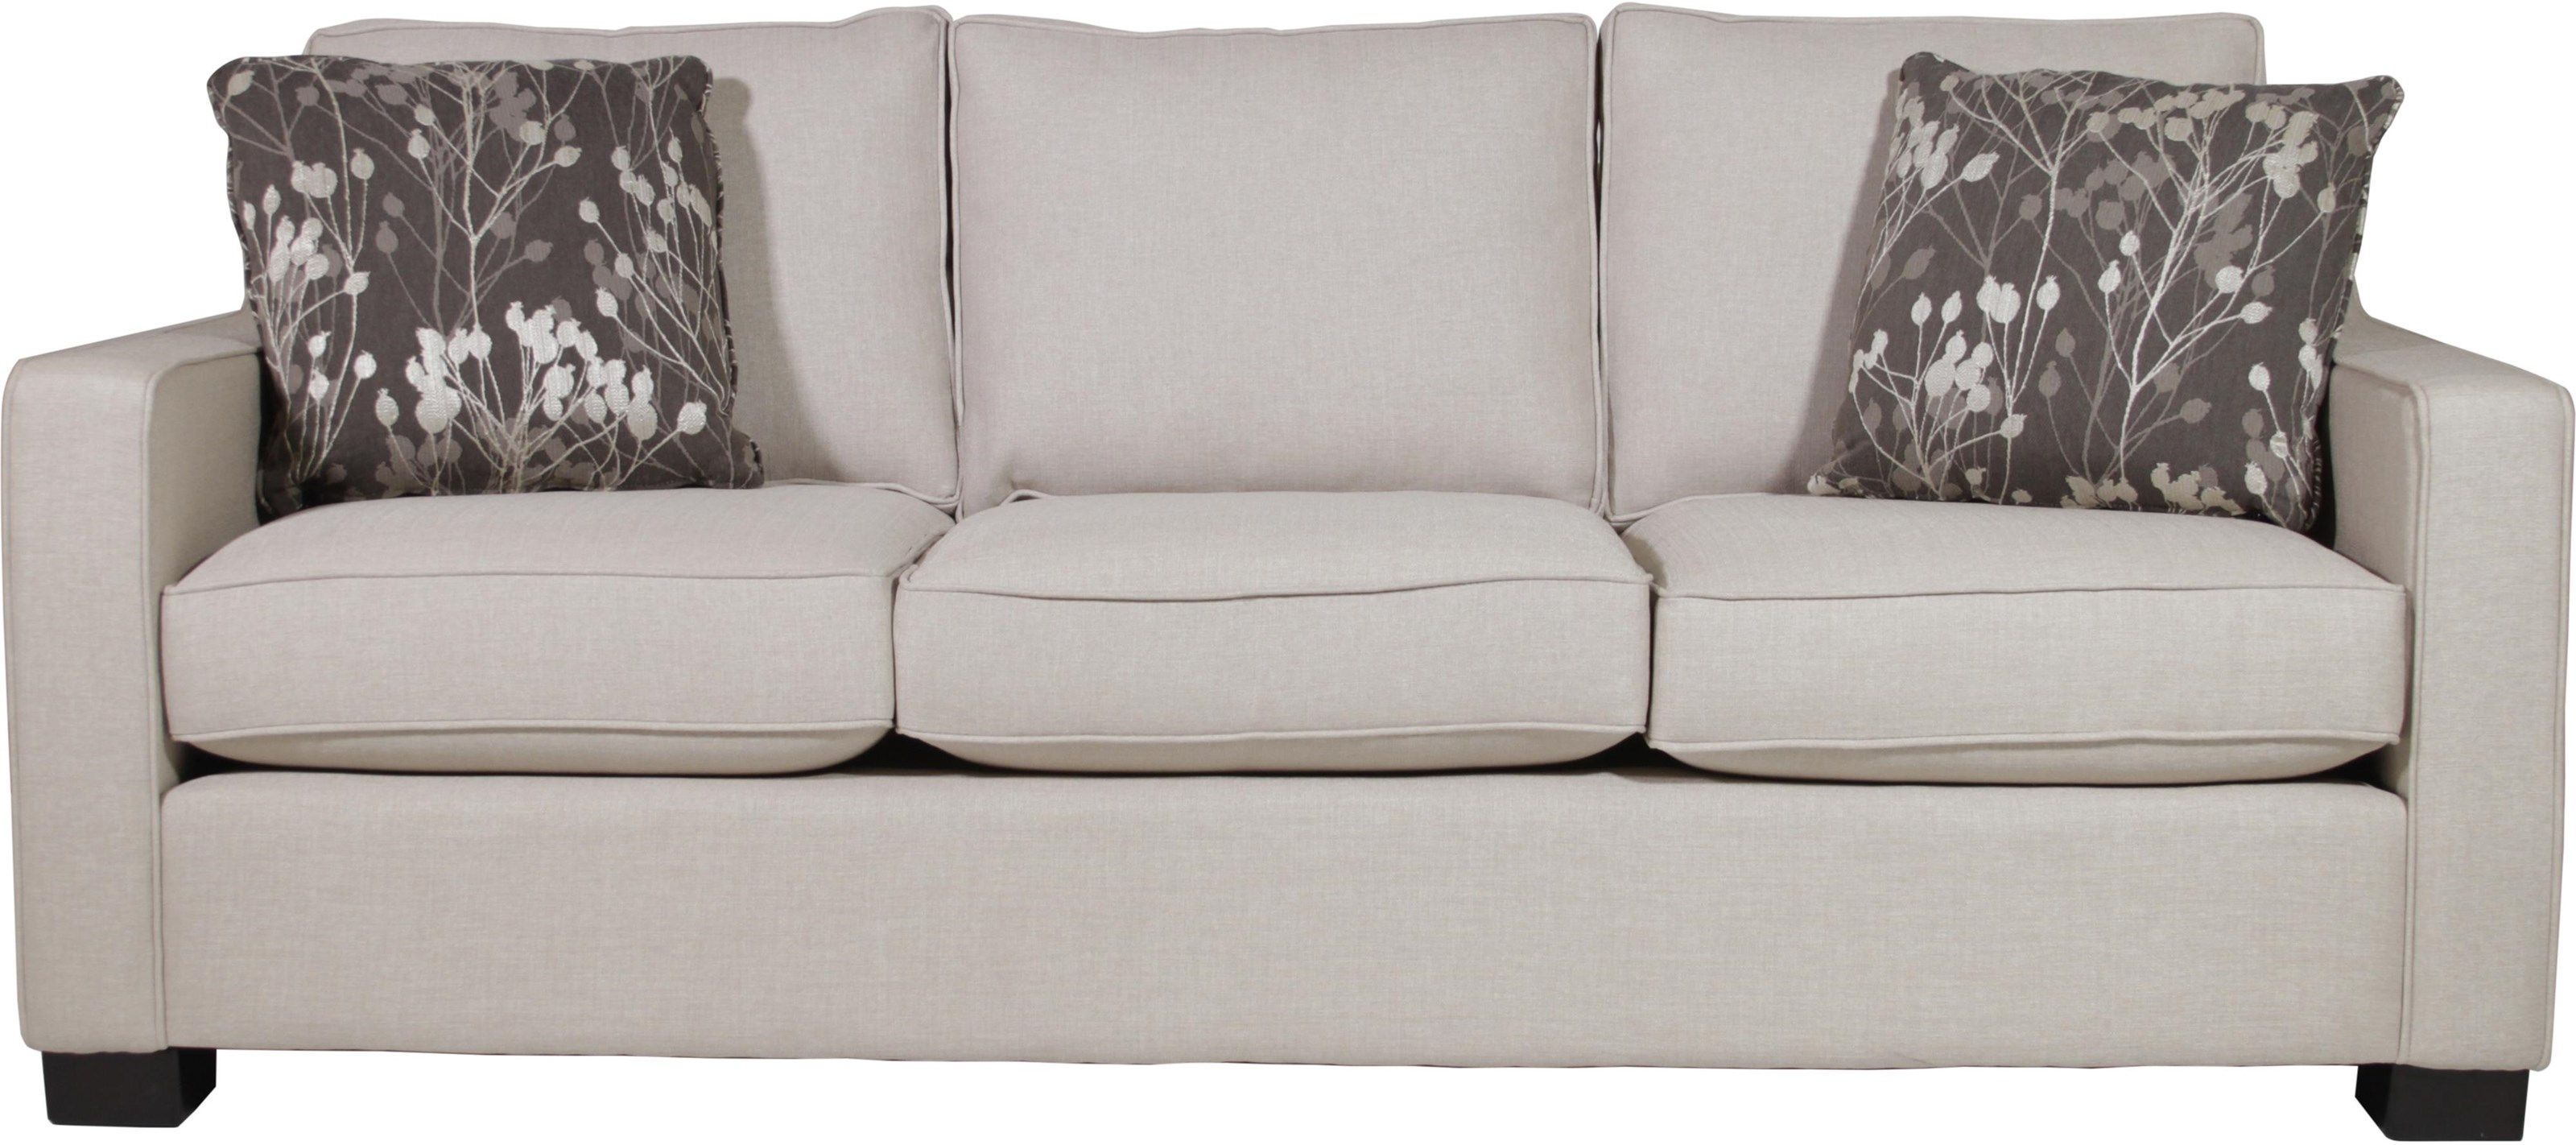 Metro Queen Sofabed At Homeworld Furniture Sofabed Furniture Homeworld Comfort Furniture Sofa Bed Furniture Store